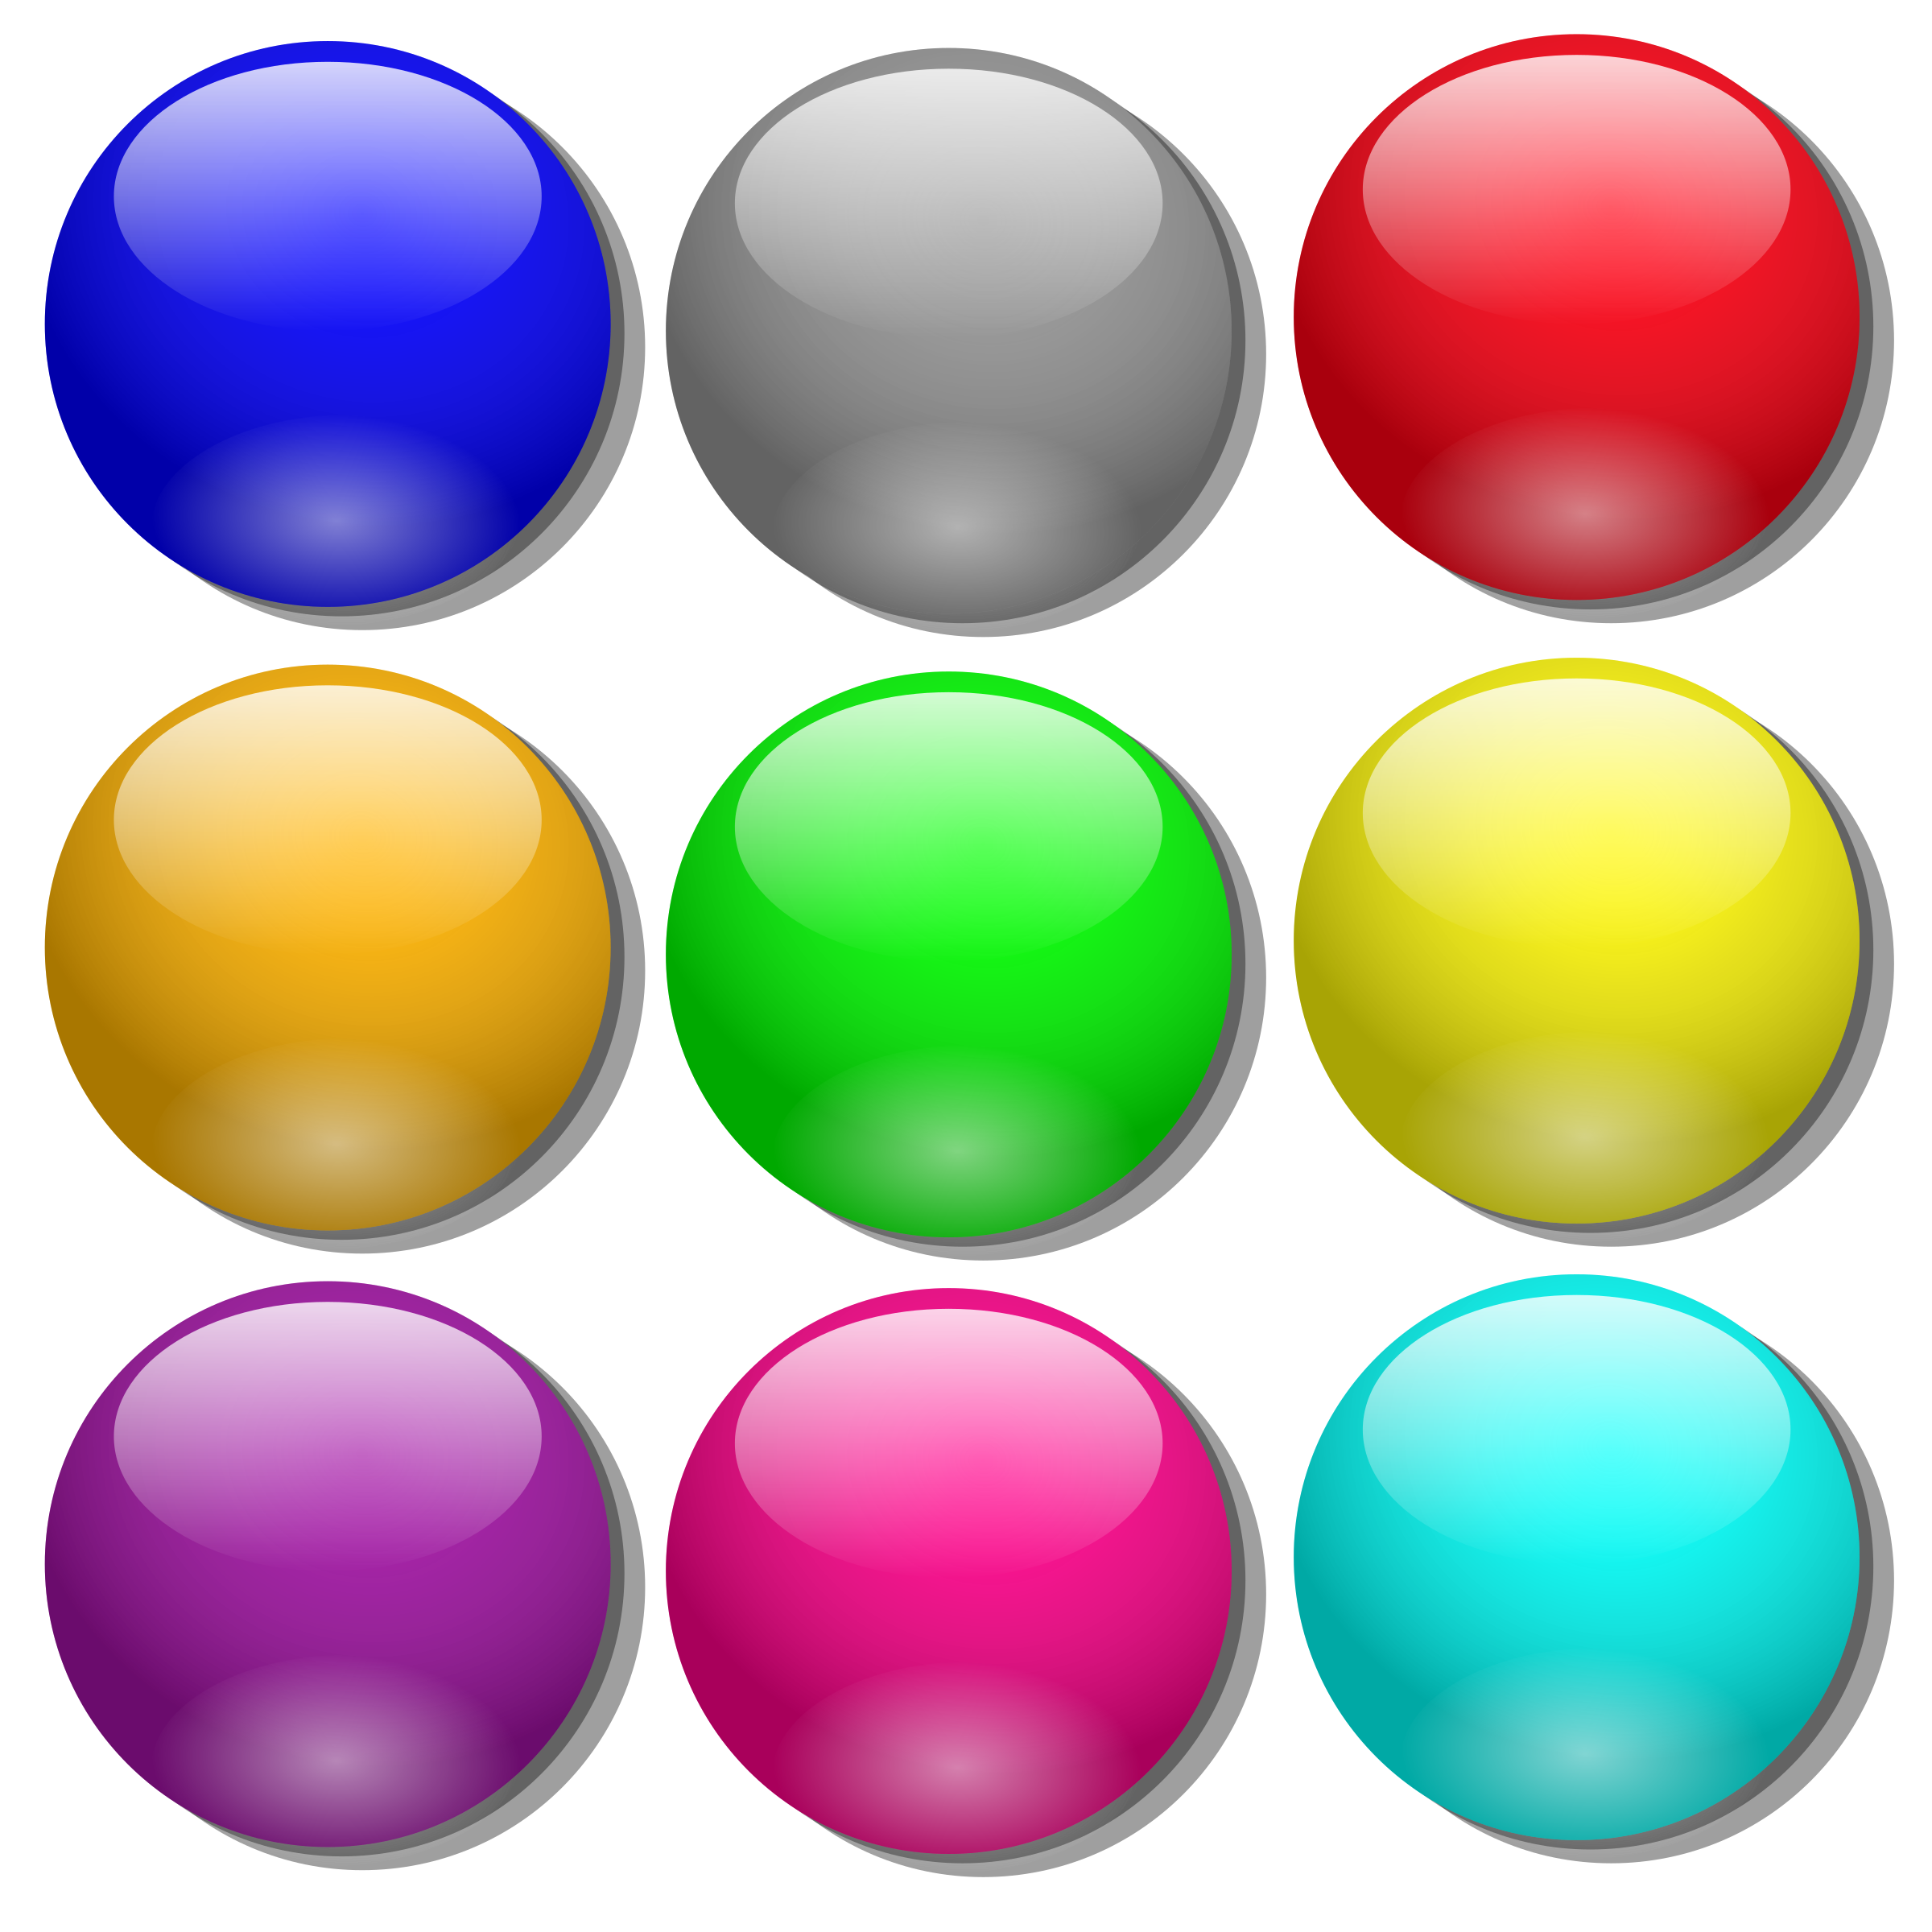 Game marbles - simple dots by nicubunu